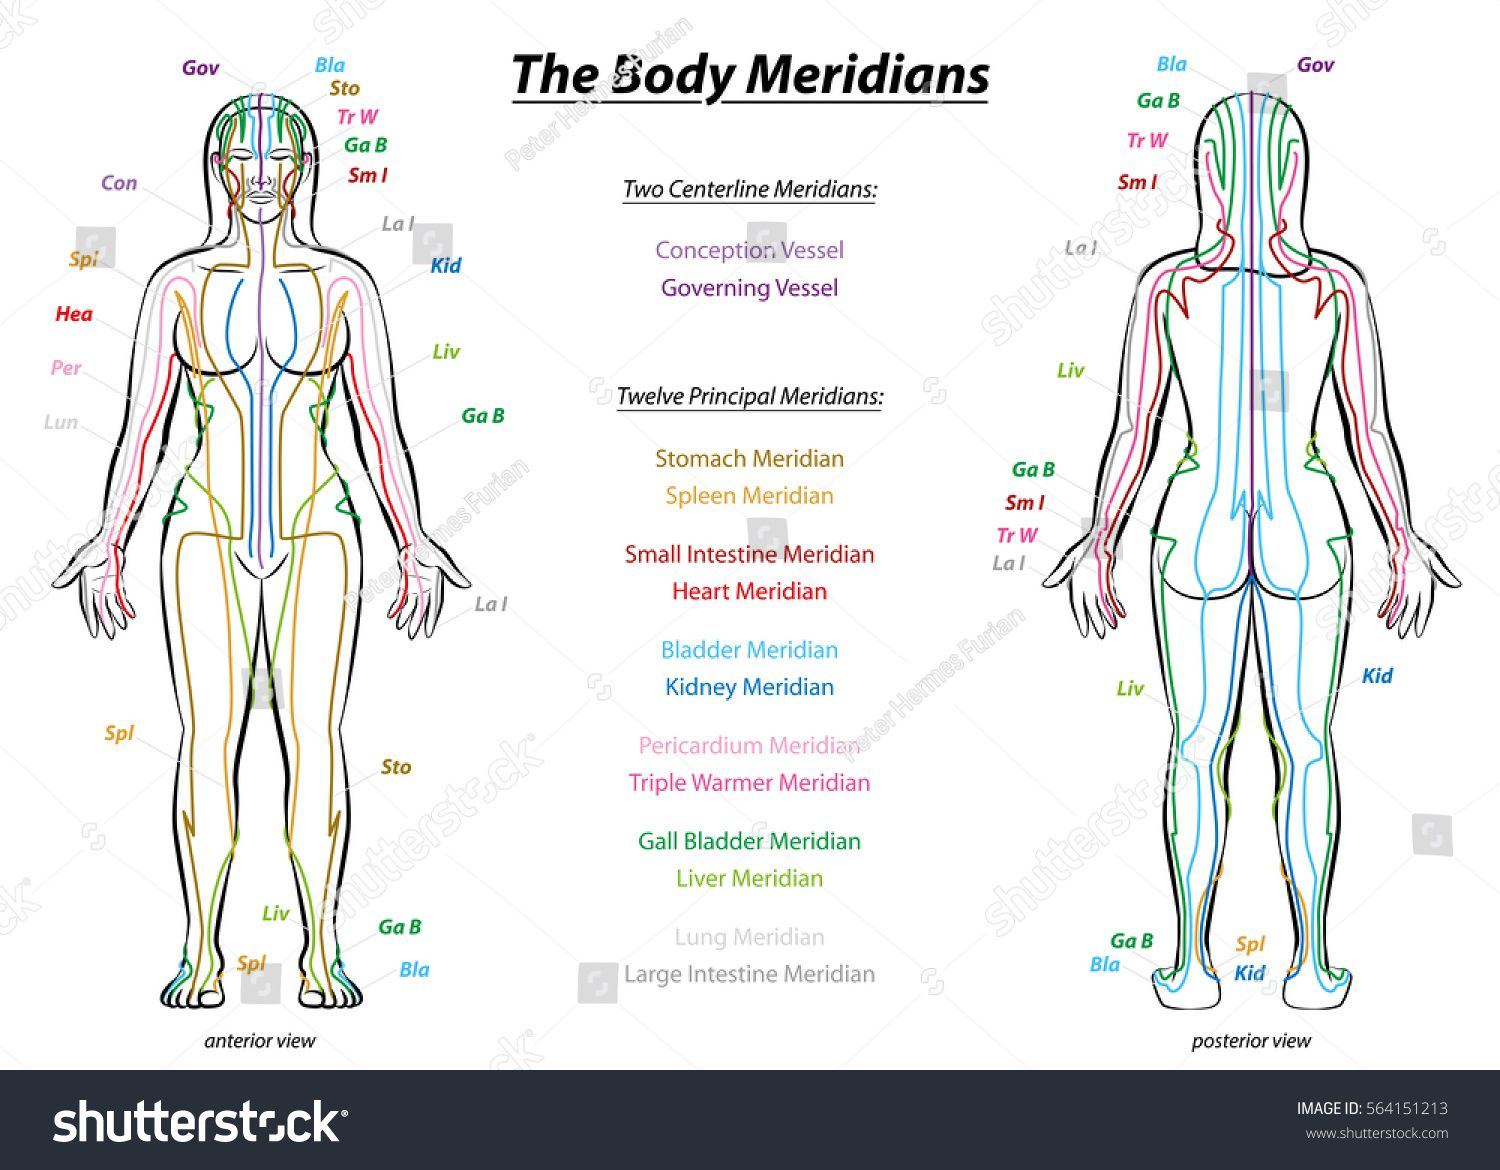 Chinese Meridian Diagram  introduction to traditional chinese medicine and meridians